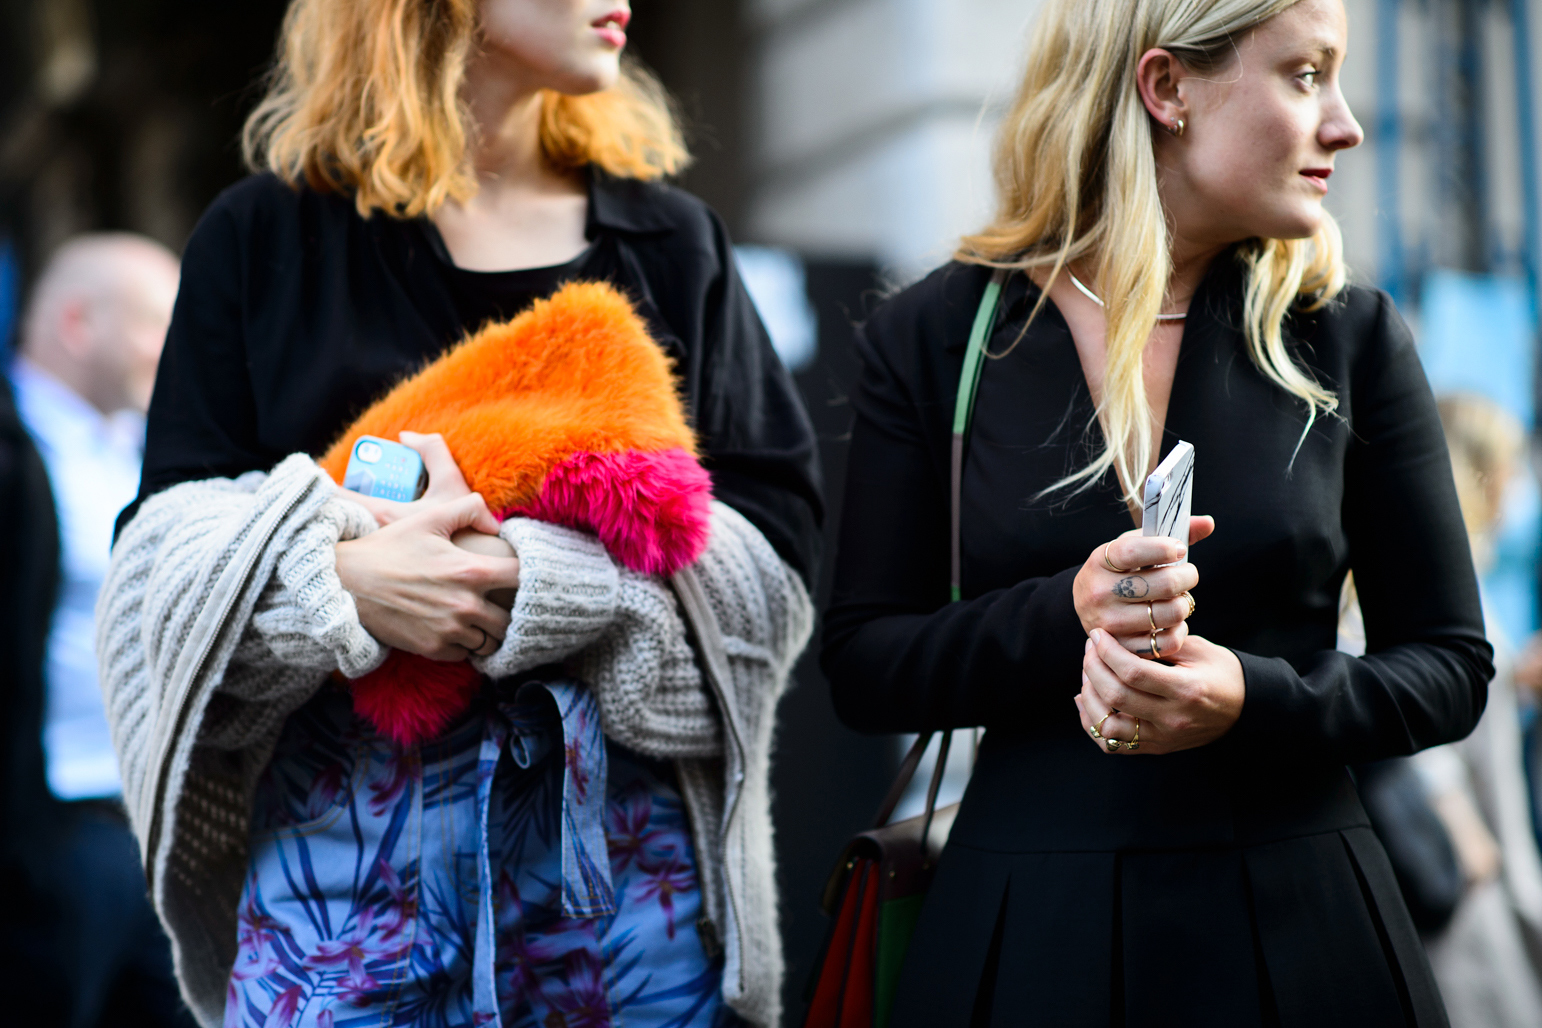 london-spring-2015-street-style-day-1-1-w-mag